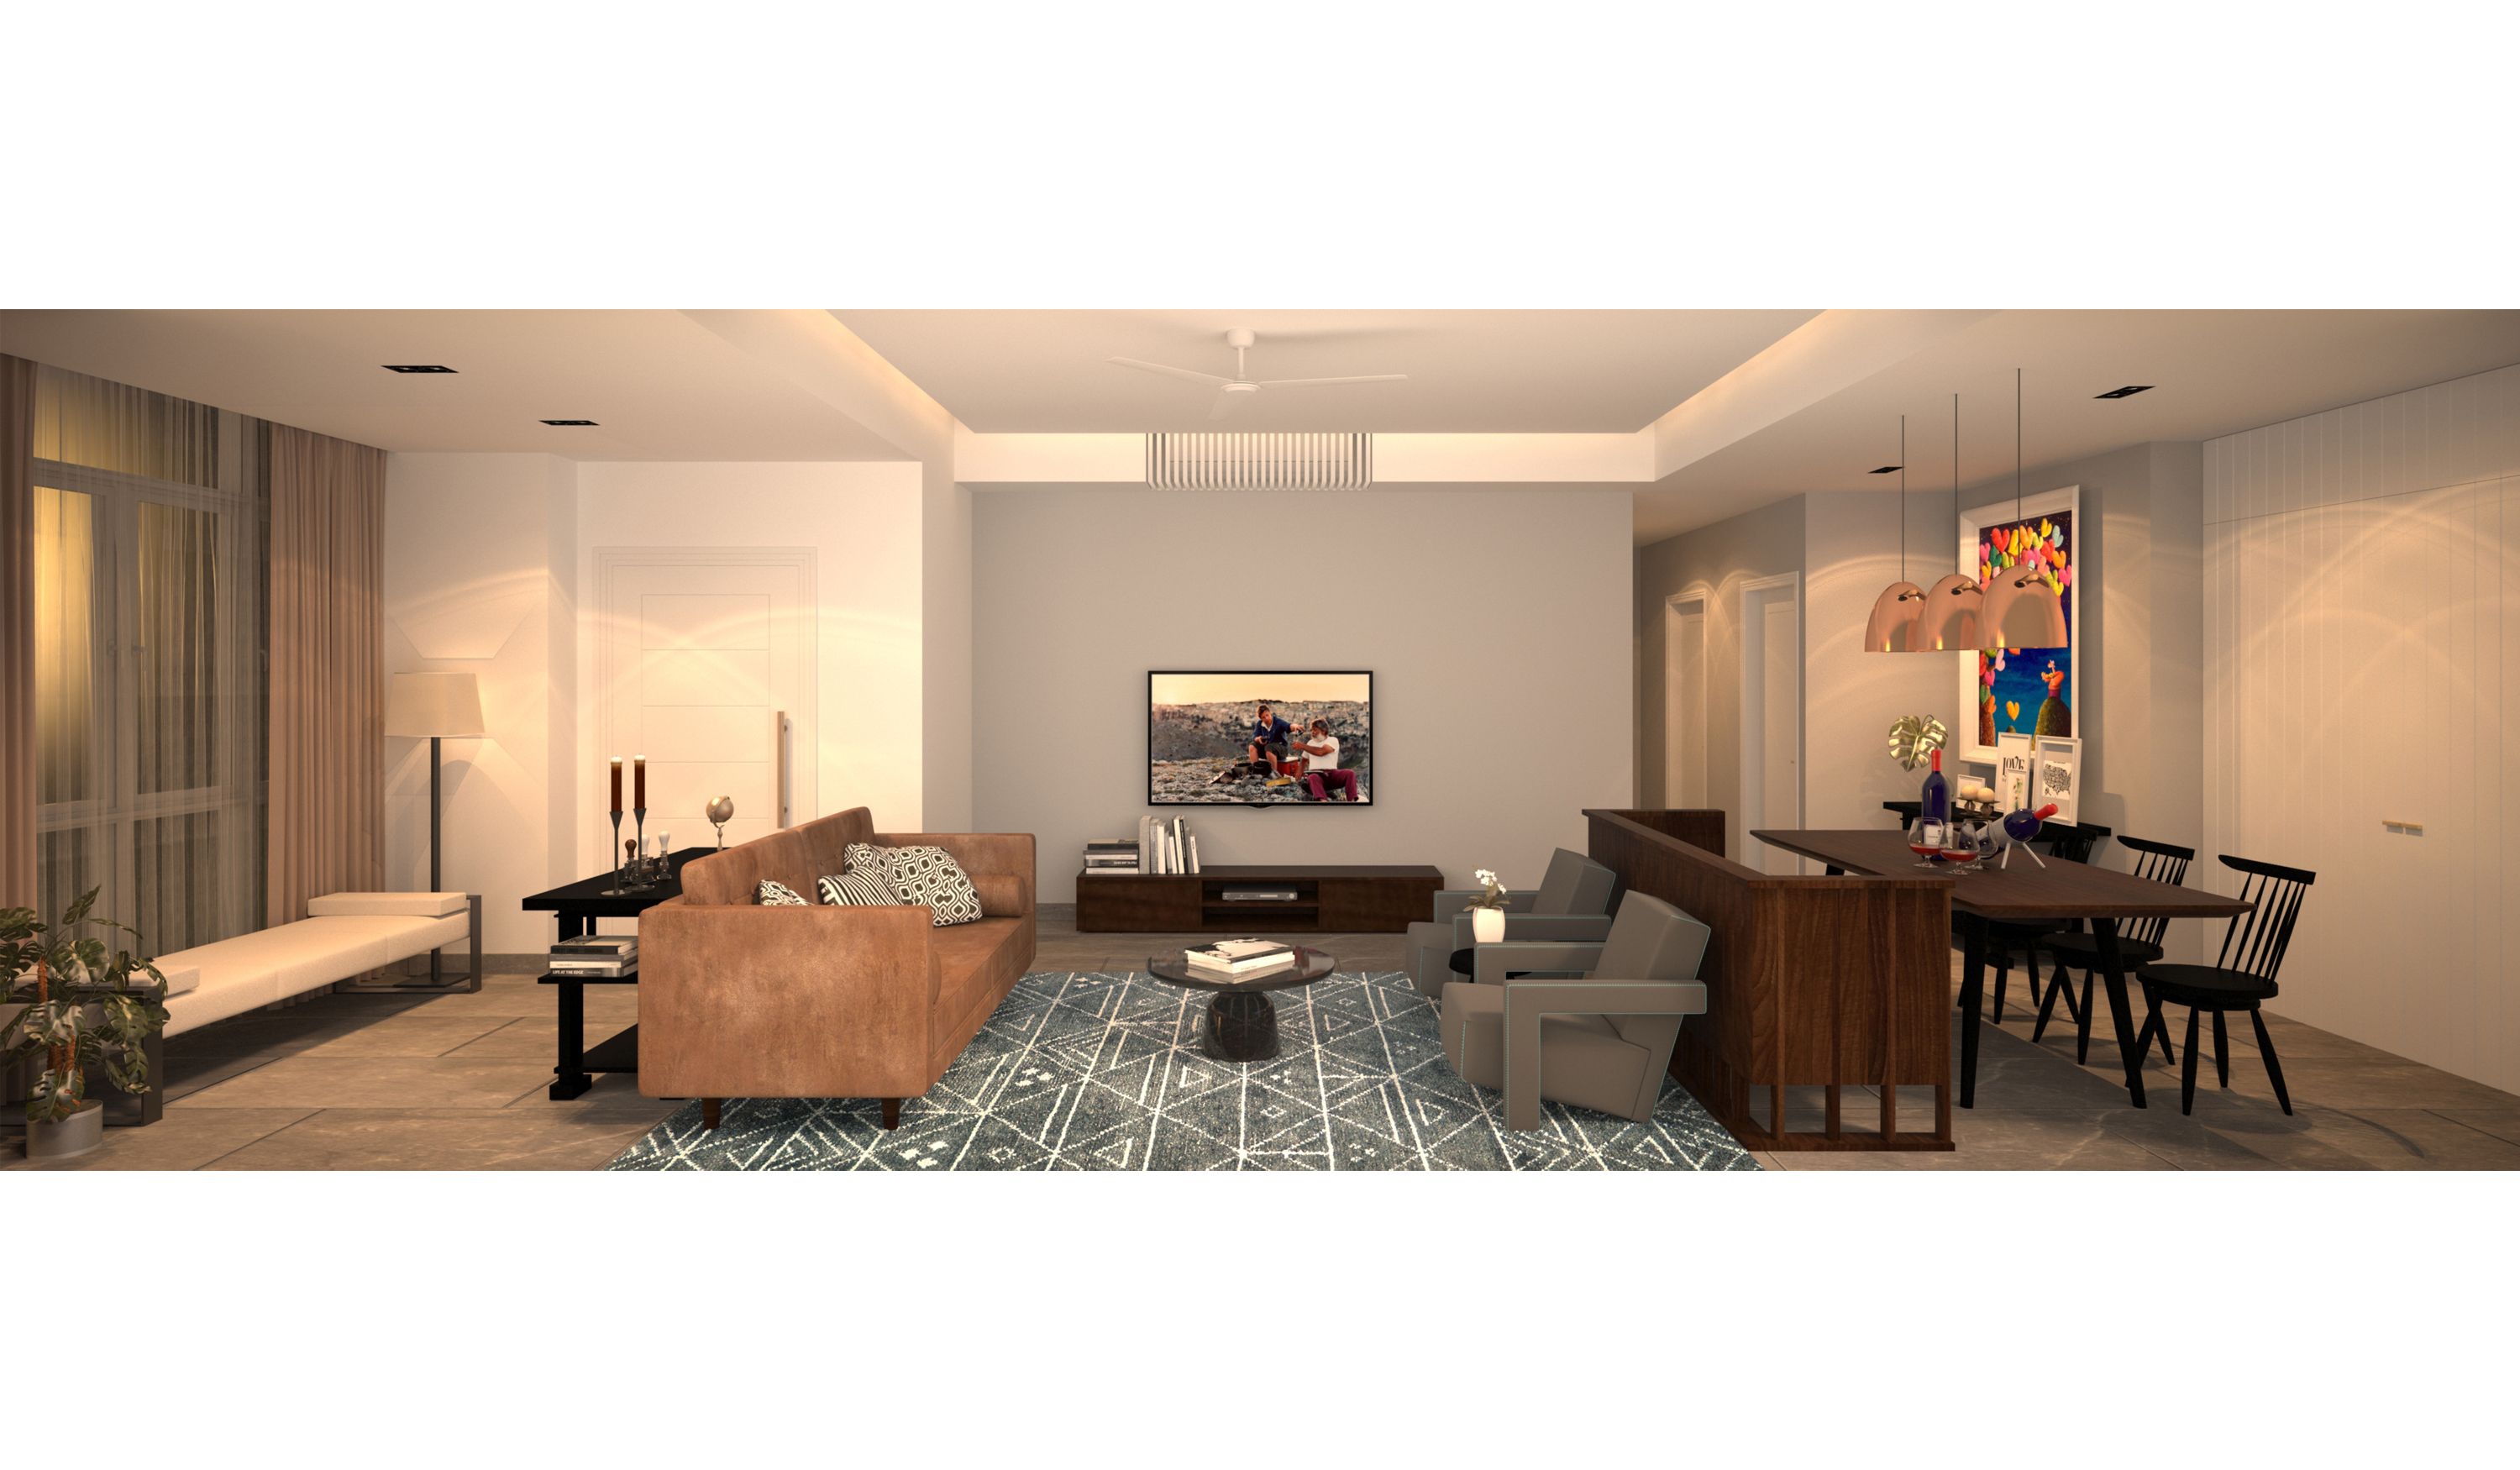 living room3_publish